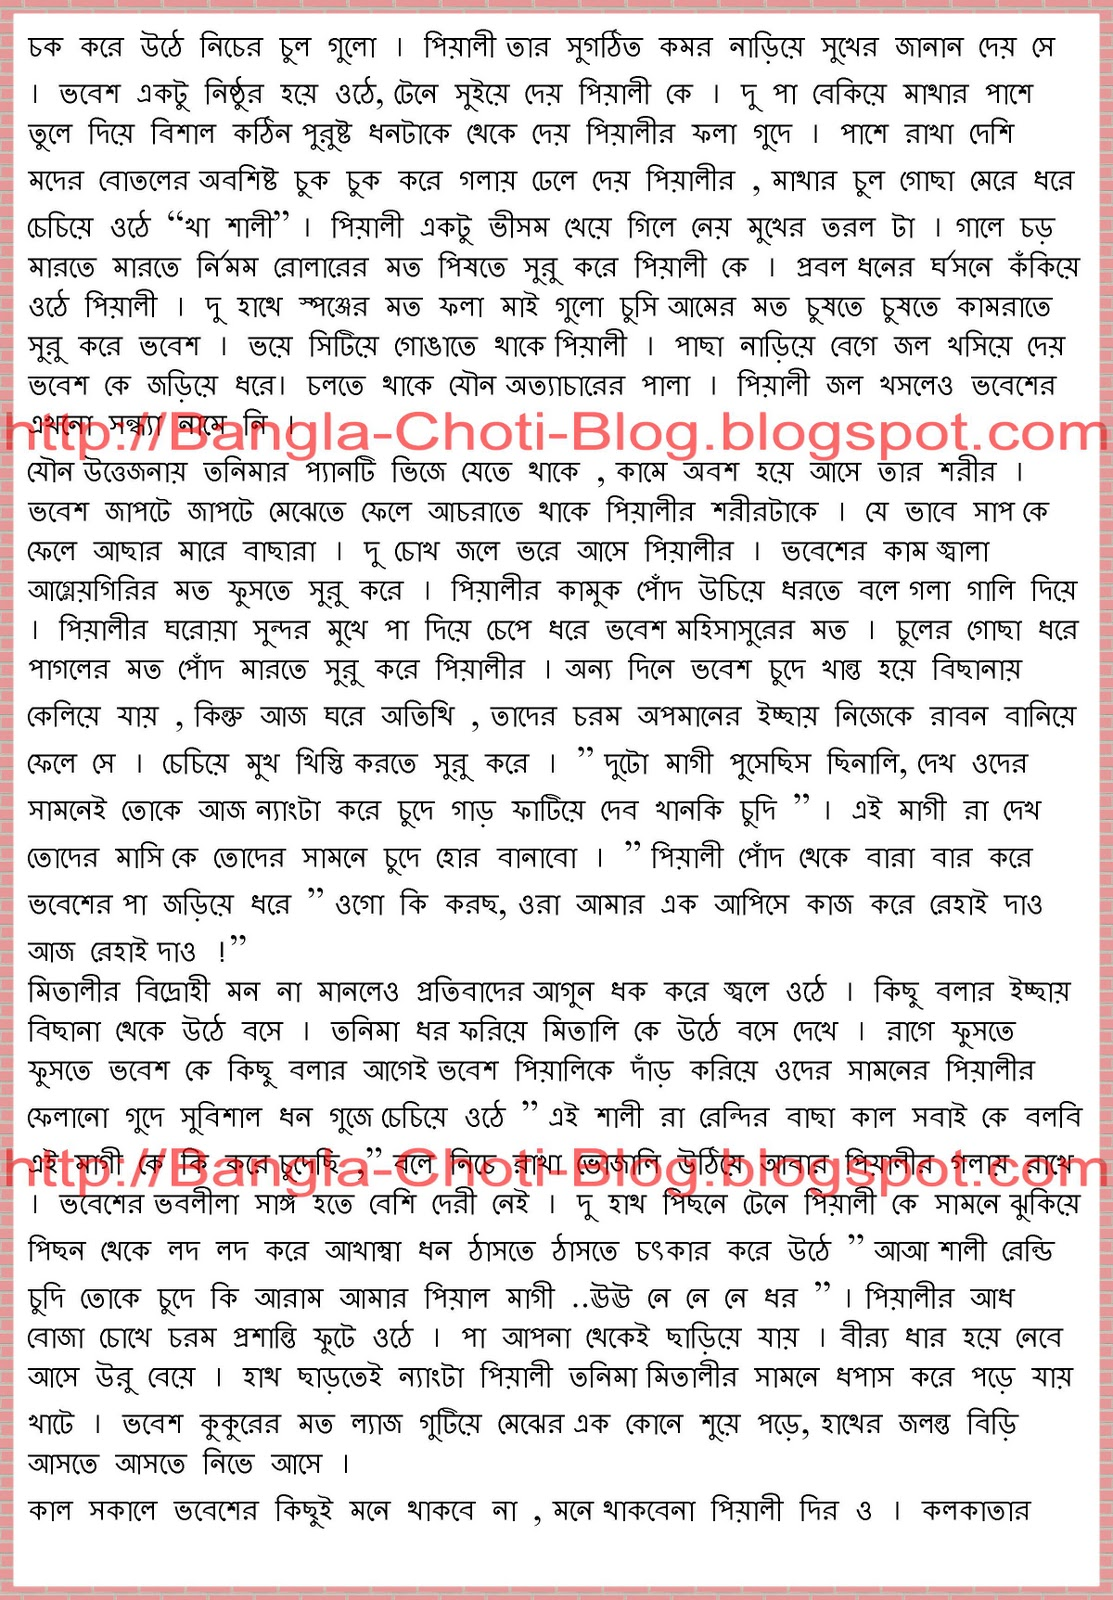 New Bangla Font Choti Golpo Download 2012  Bangladeshi -5415